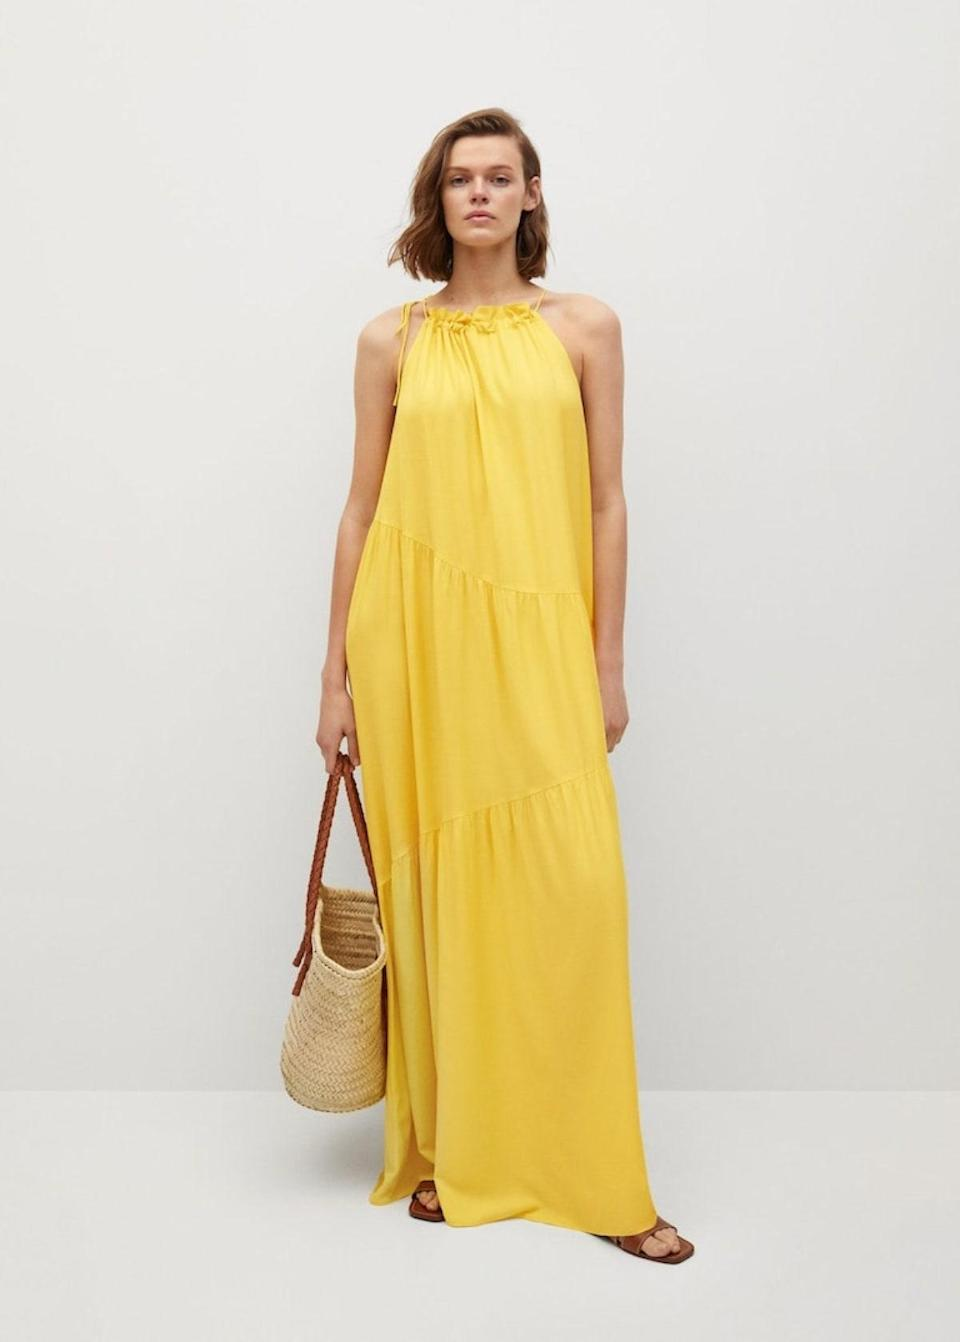 """Get your daily dose of vitamin C in with this sleeveless citrus dress, guaranteed to add zest to the evening's festivities. $80, Mango. <a href=""""https://shop.mango.com/us/women/dresses-and-jumpsuits-long/flowy-ruffled-dress_87039014.html"""" rel=""""nofollow noopener"""" target=""""_blank"""" data-ylk=""""slk:Get it now!"""" class=""""link rapid-noclick-resp"""">Get it now!</a>"""